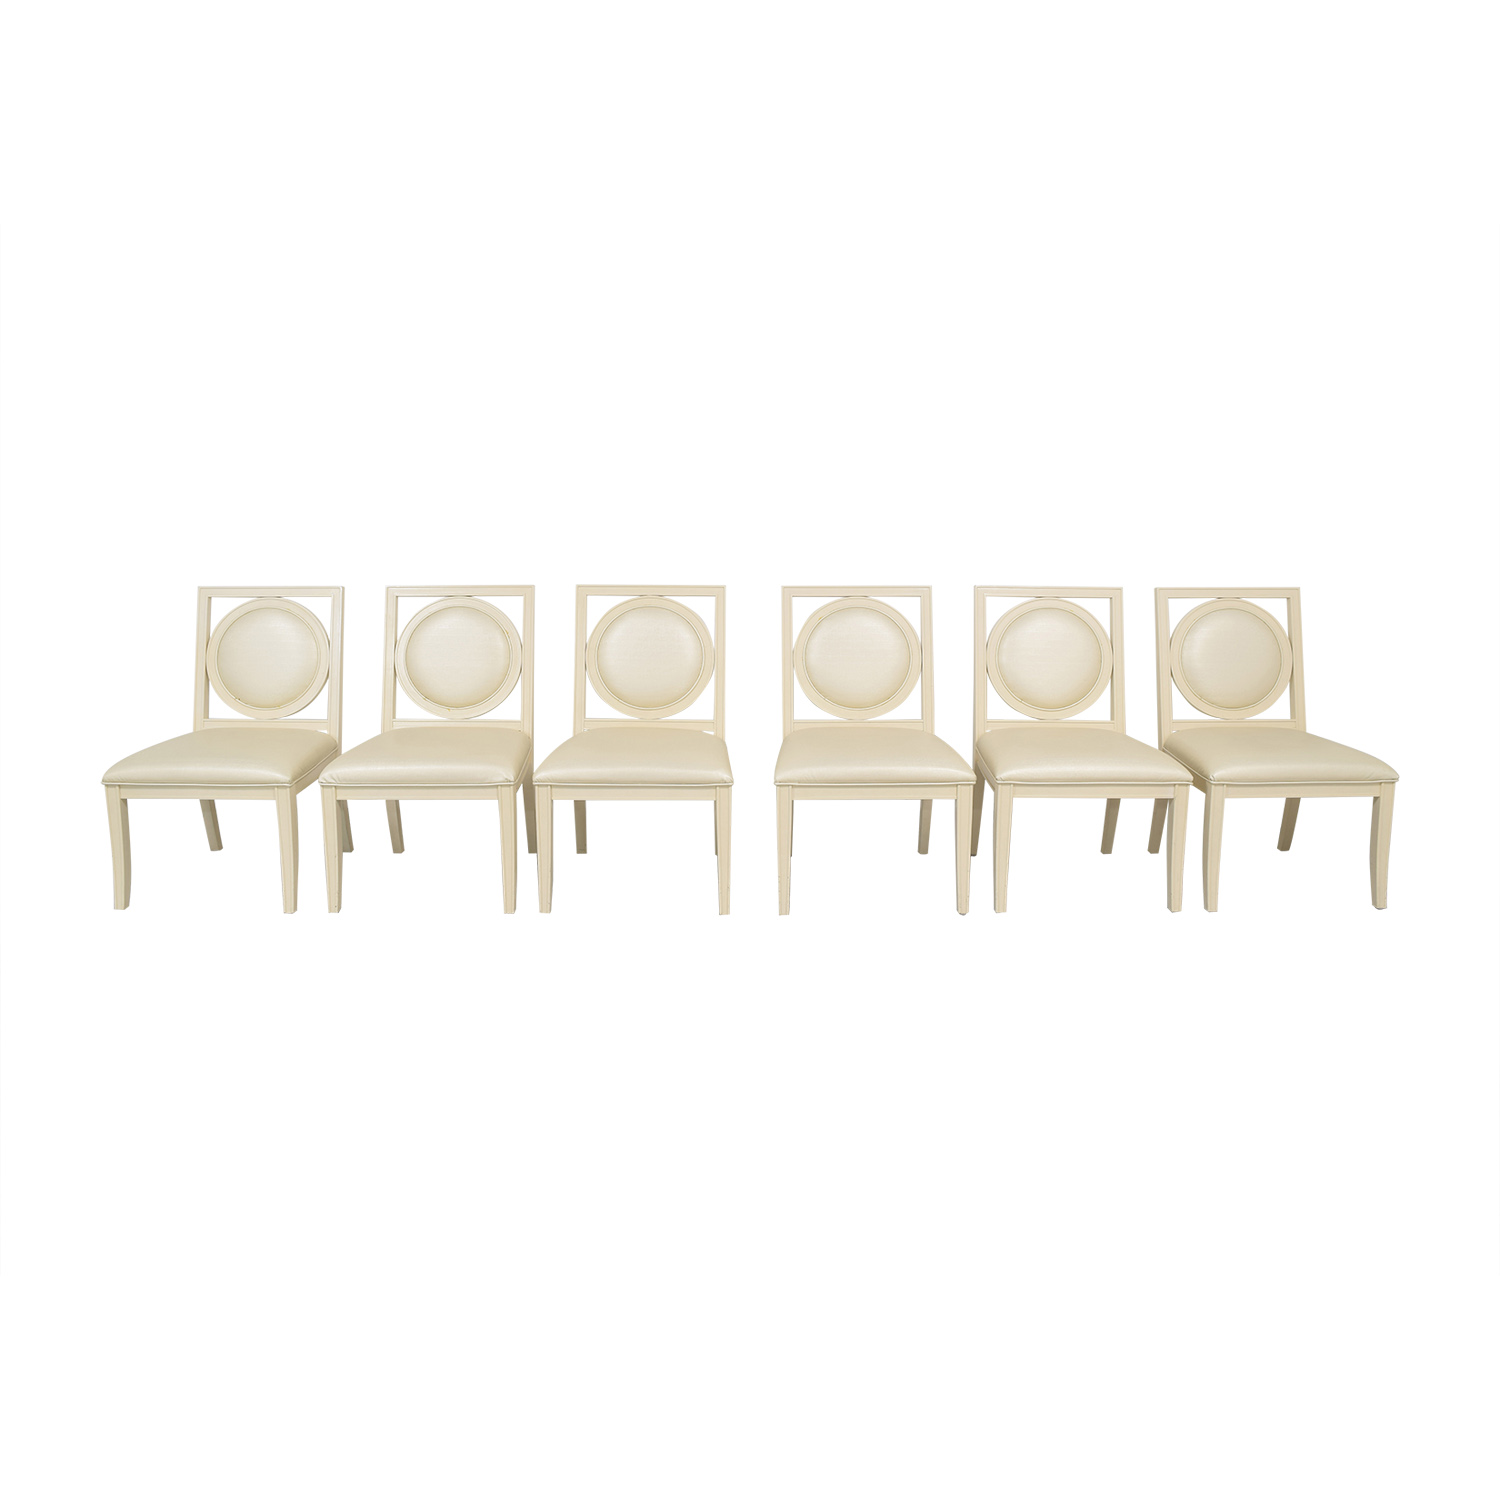 Bernhardt Dining Chairs / Dining Chairs